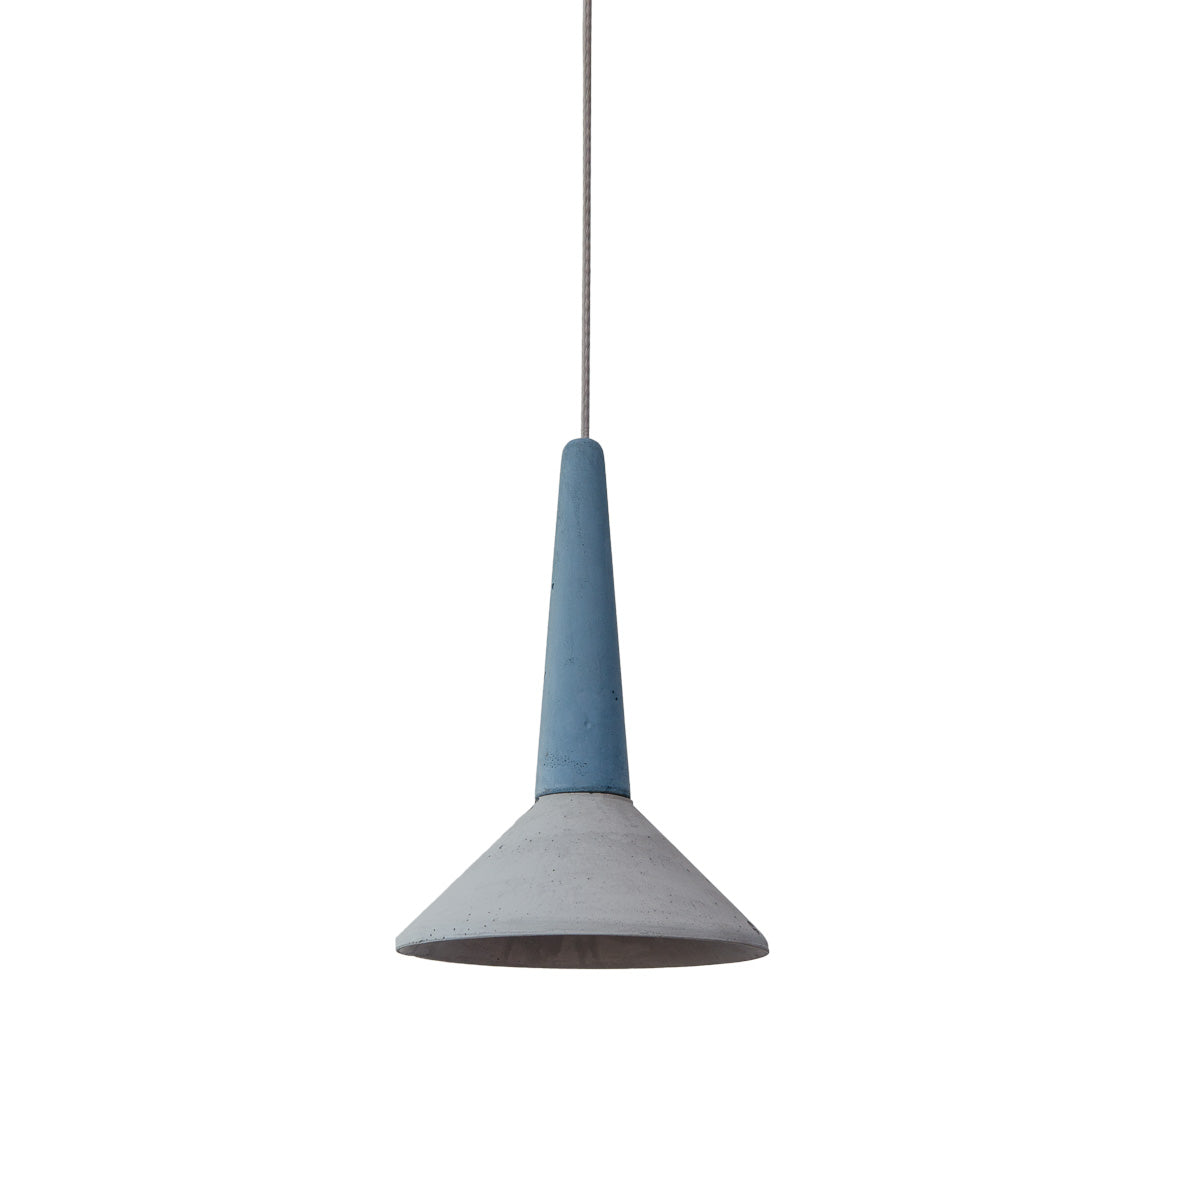 Loftlight Medano pendant lamp in grey and blue hand cast in concrete from Warehouse Home